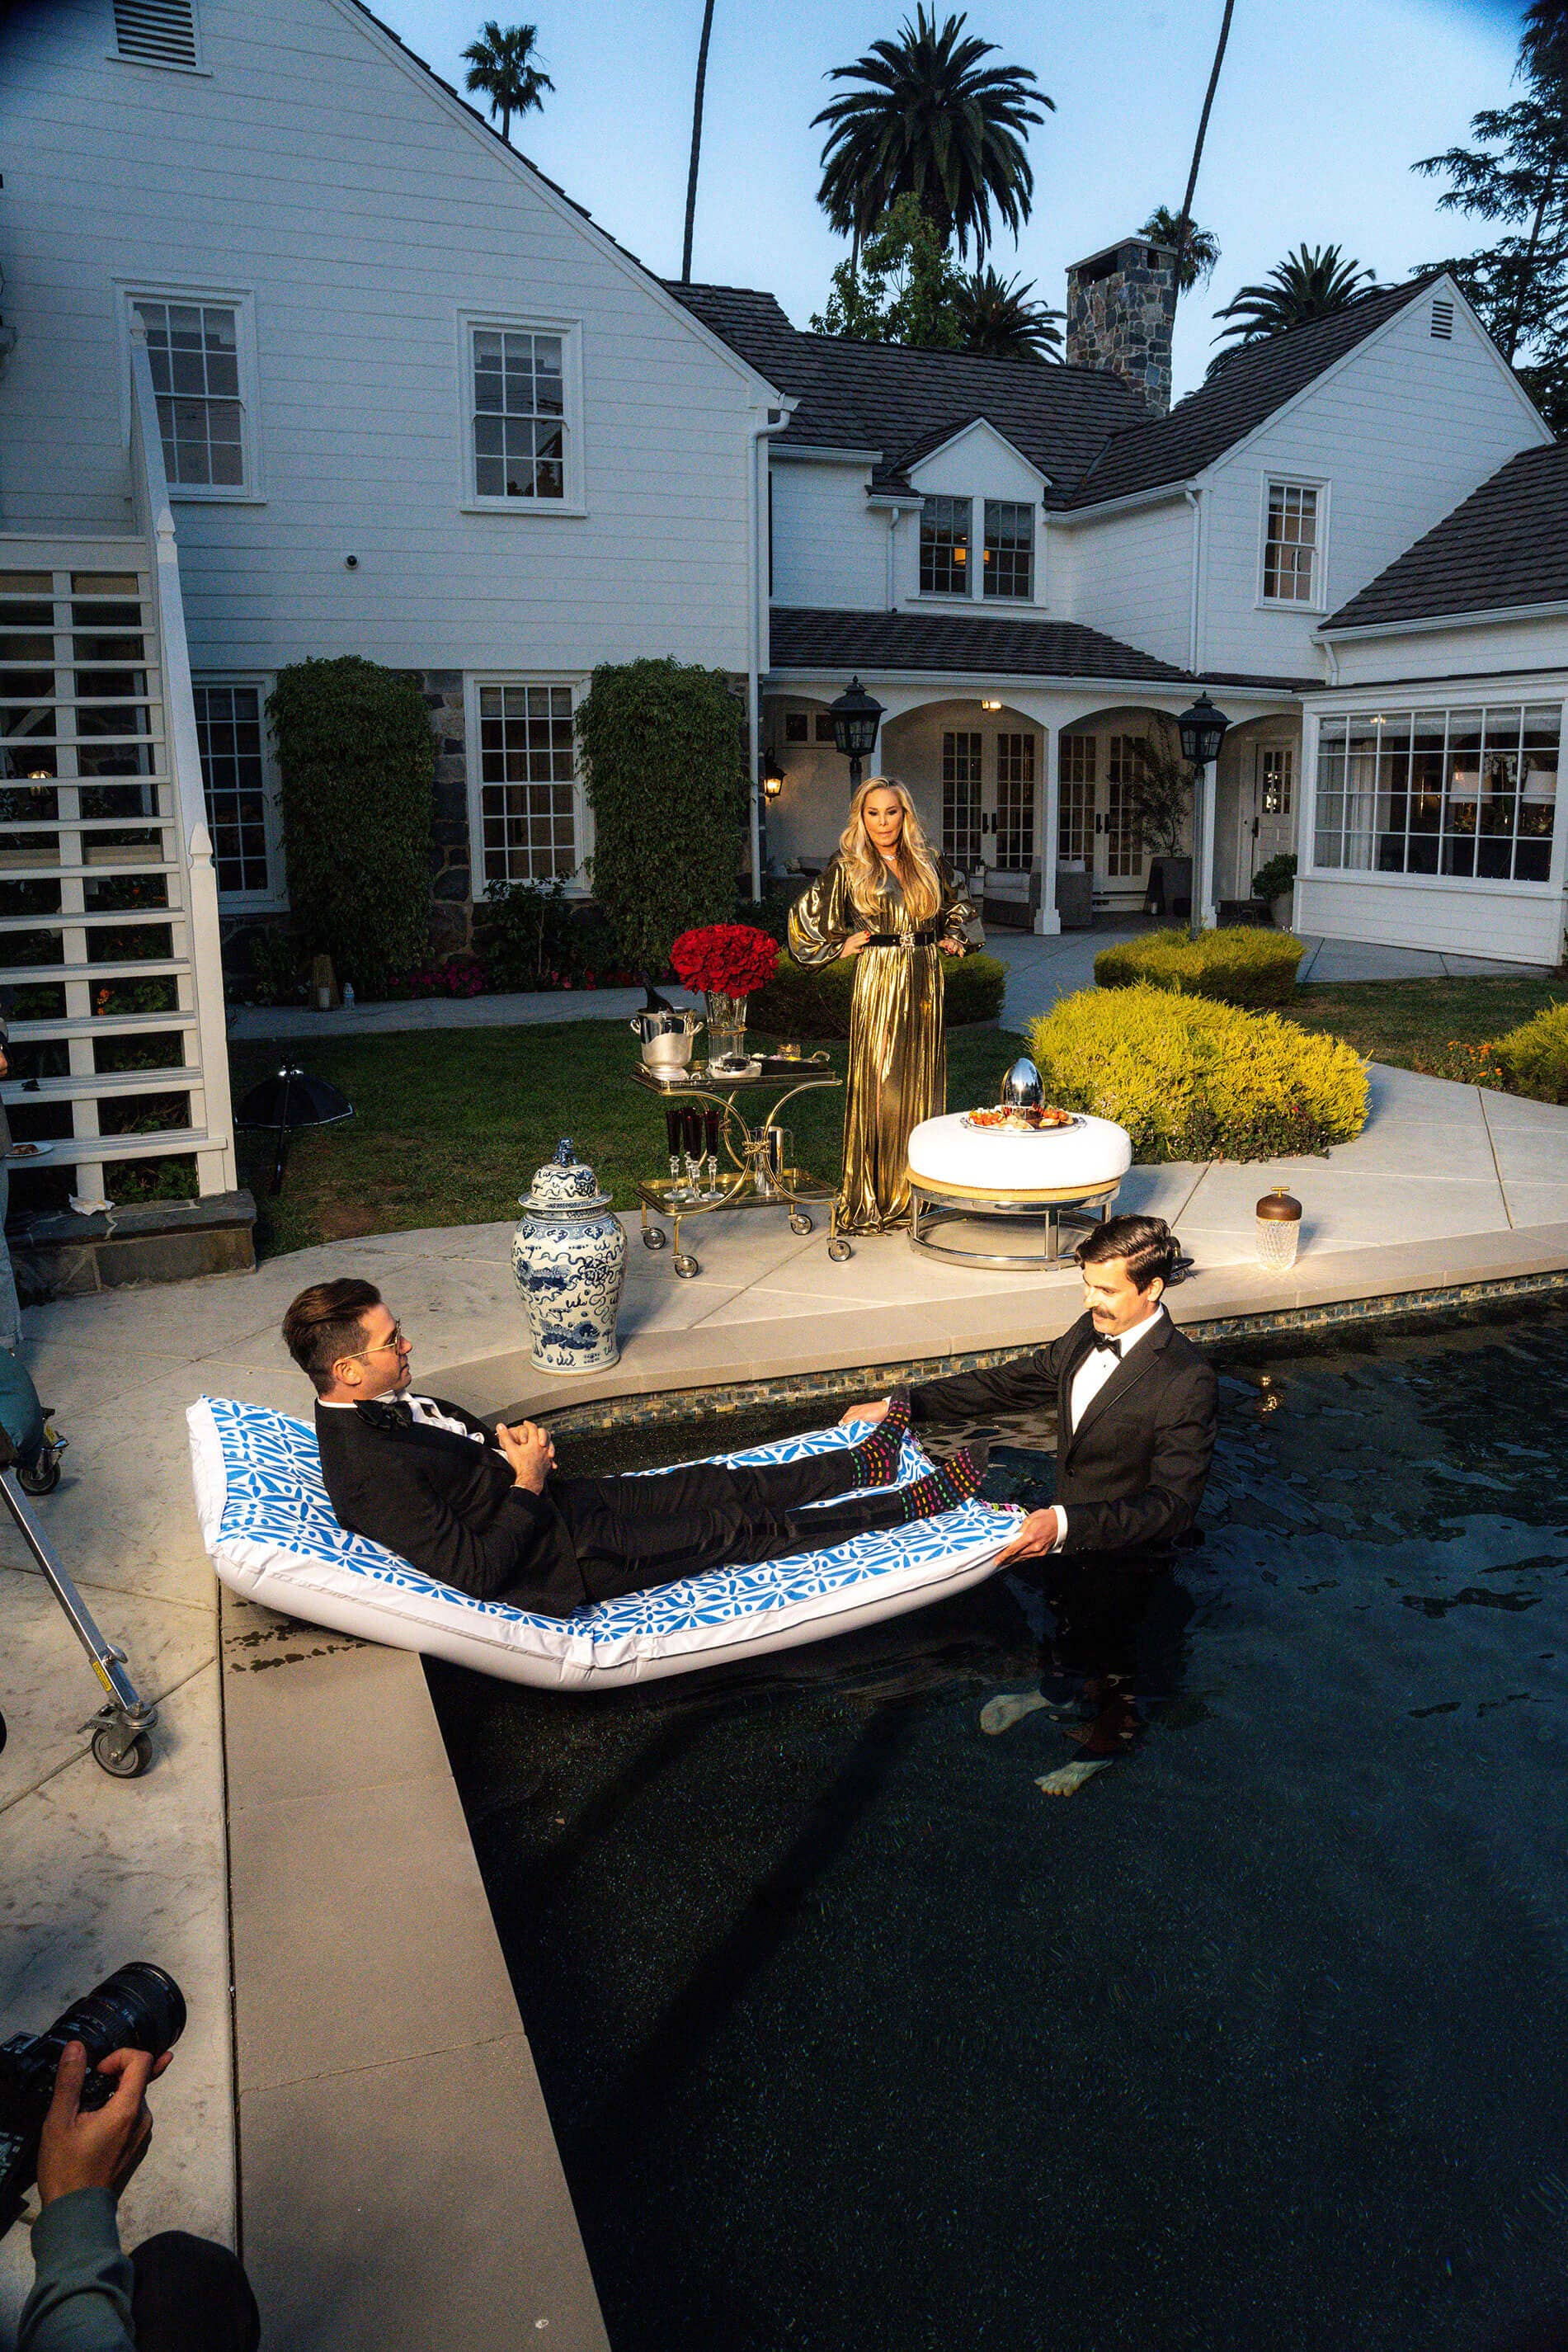 Josh Flagg and Adrienne Maloof at sunset by the pool